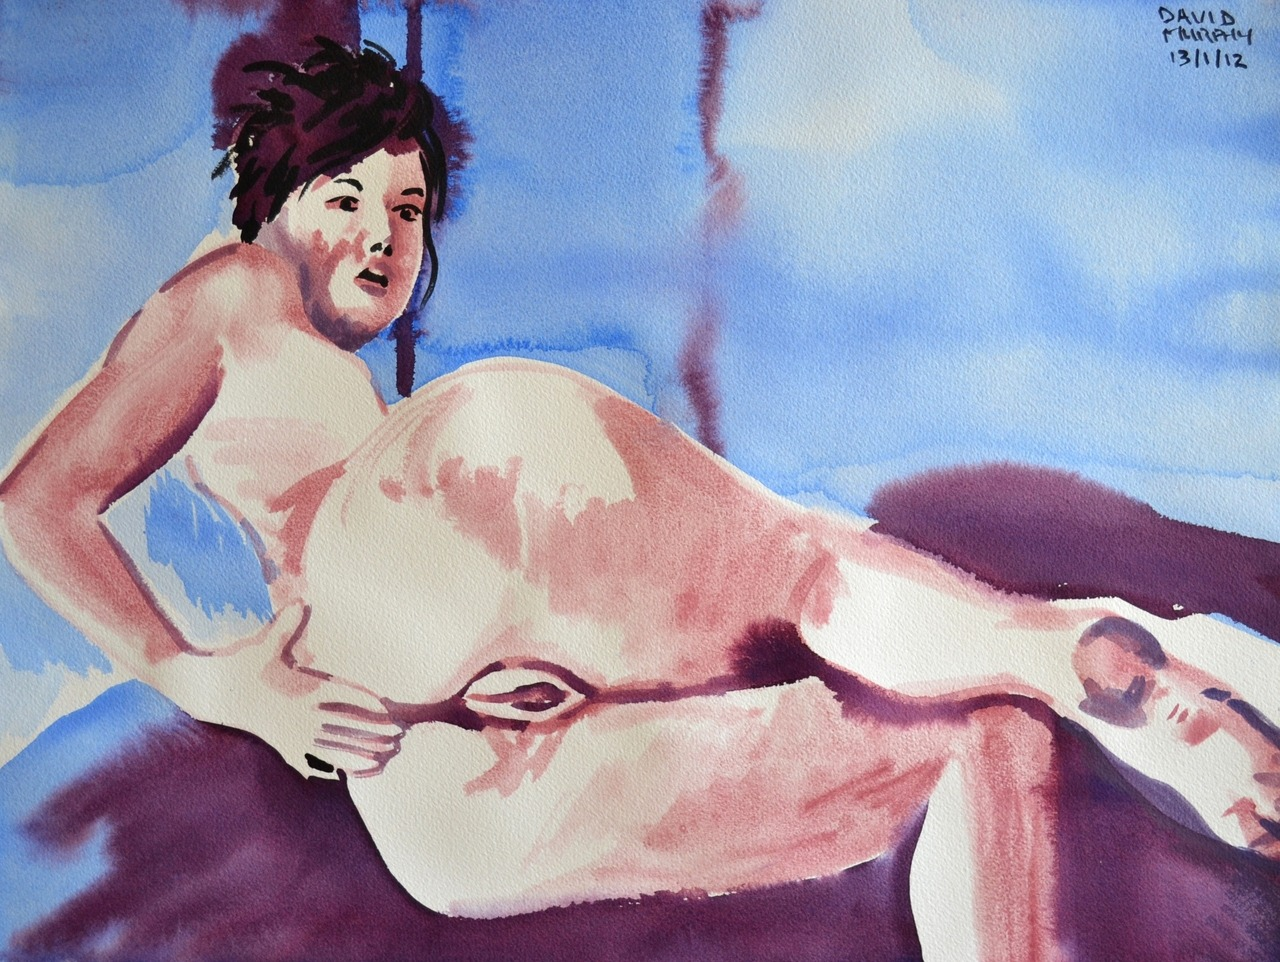 "David Murphy, Naked Girl No. 9, 2012, 24"" x 18"", Watercolour on Arches 140lb Watercolour Paper. www.davidbrendanmurphy.com"